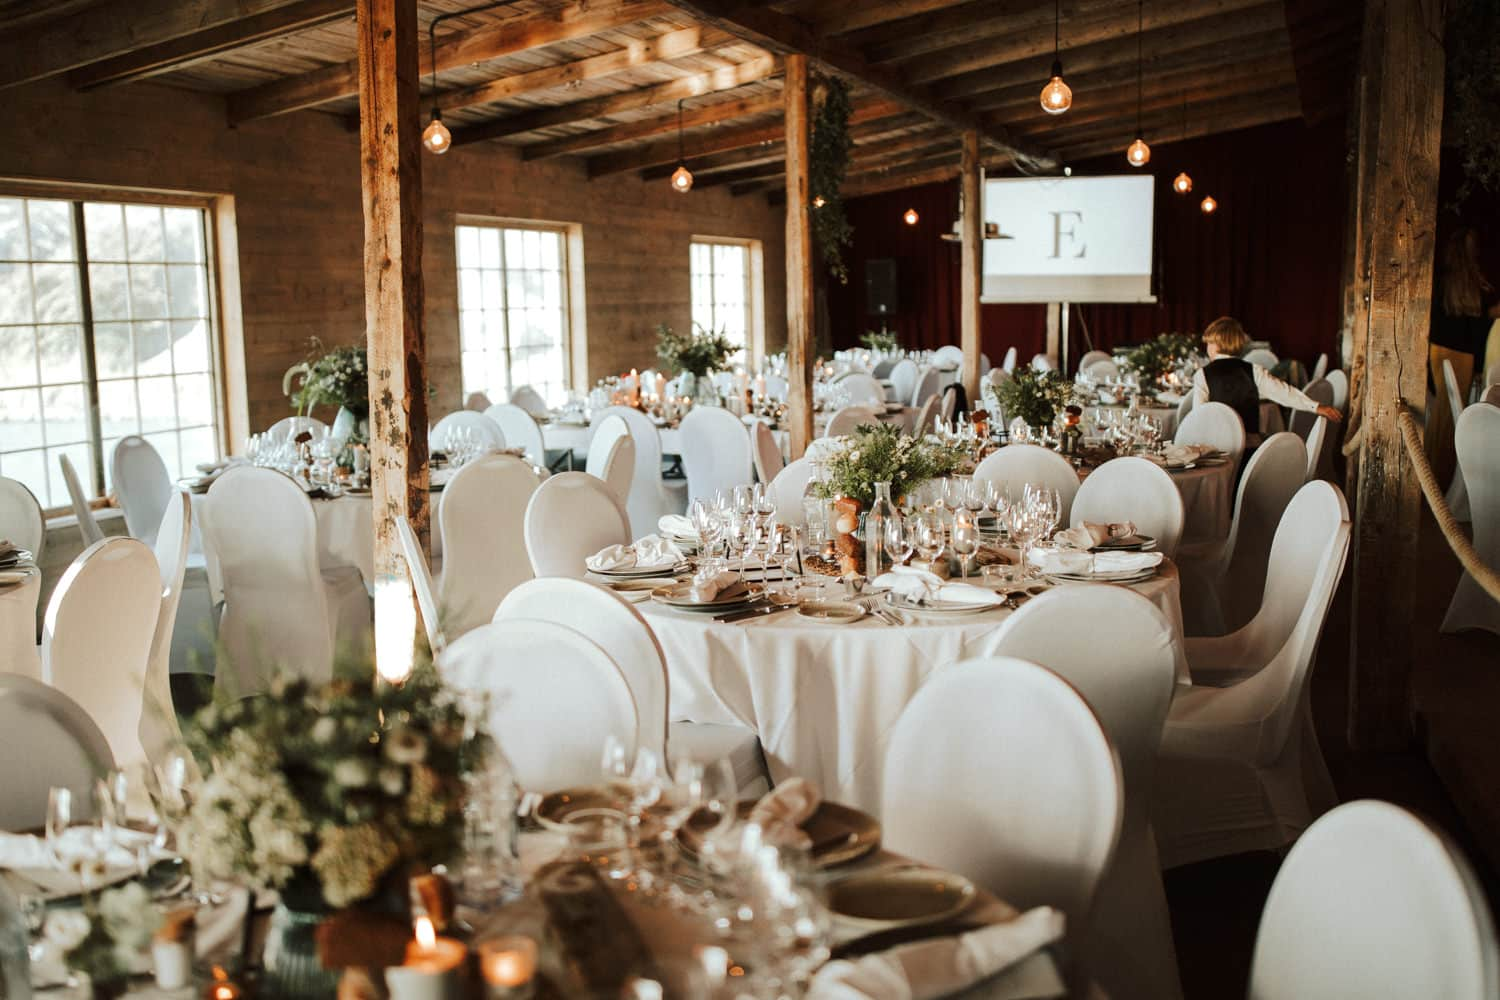 The location features white wedding tables and white chairs.